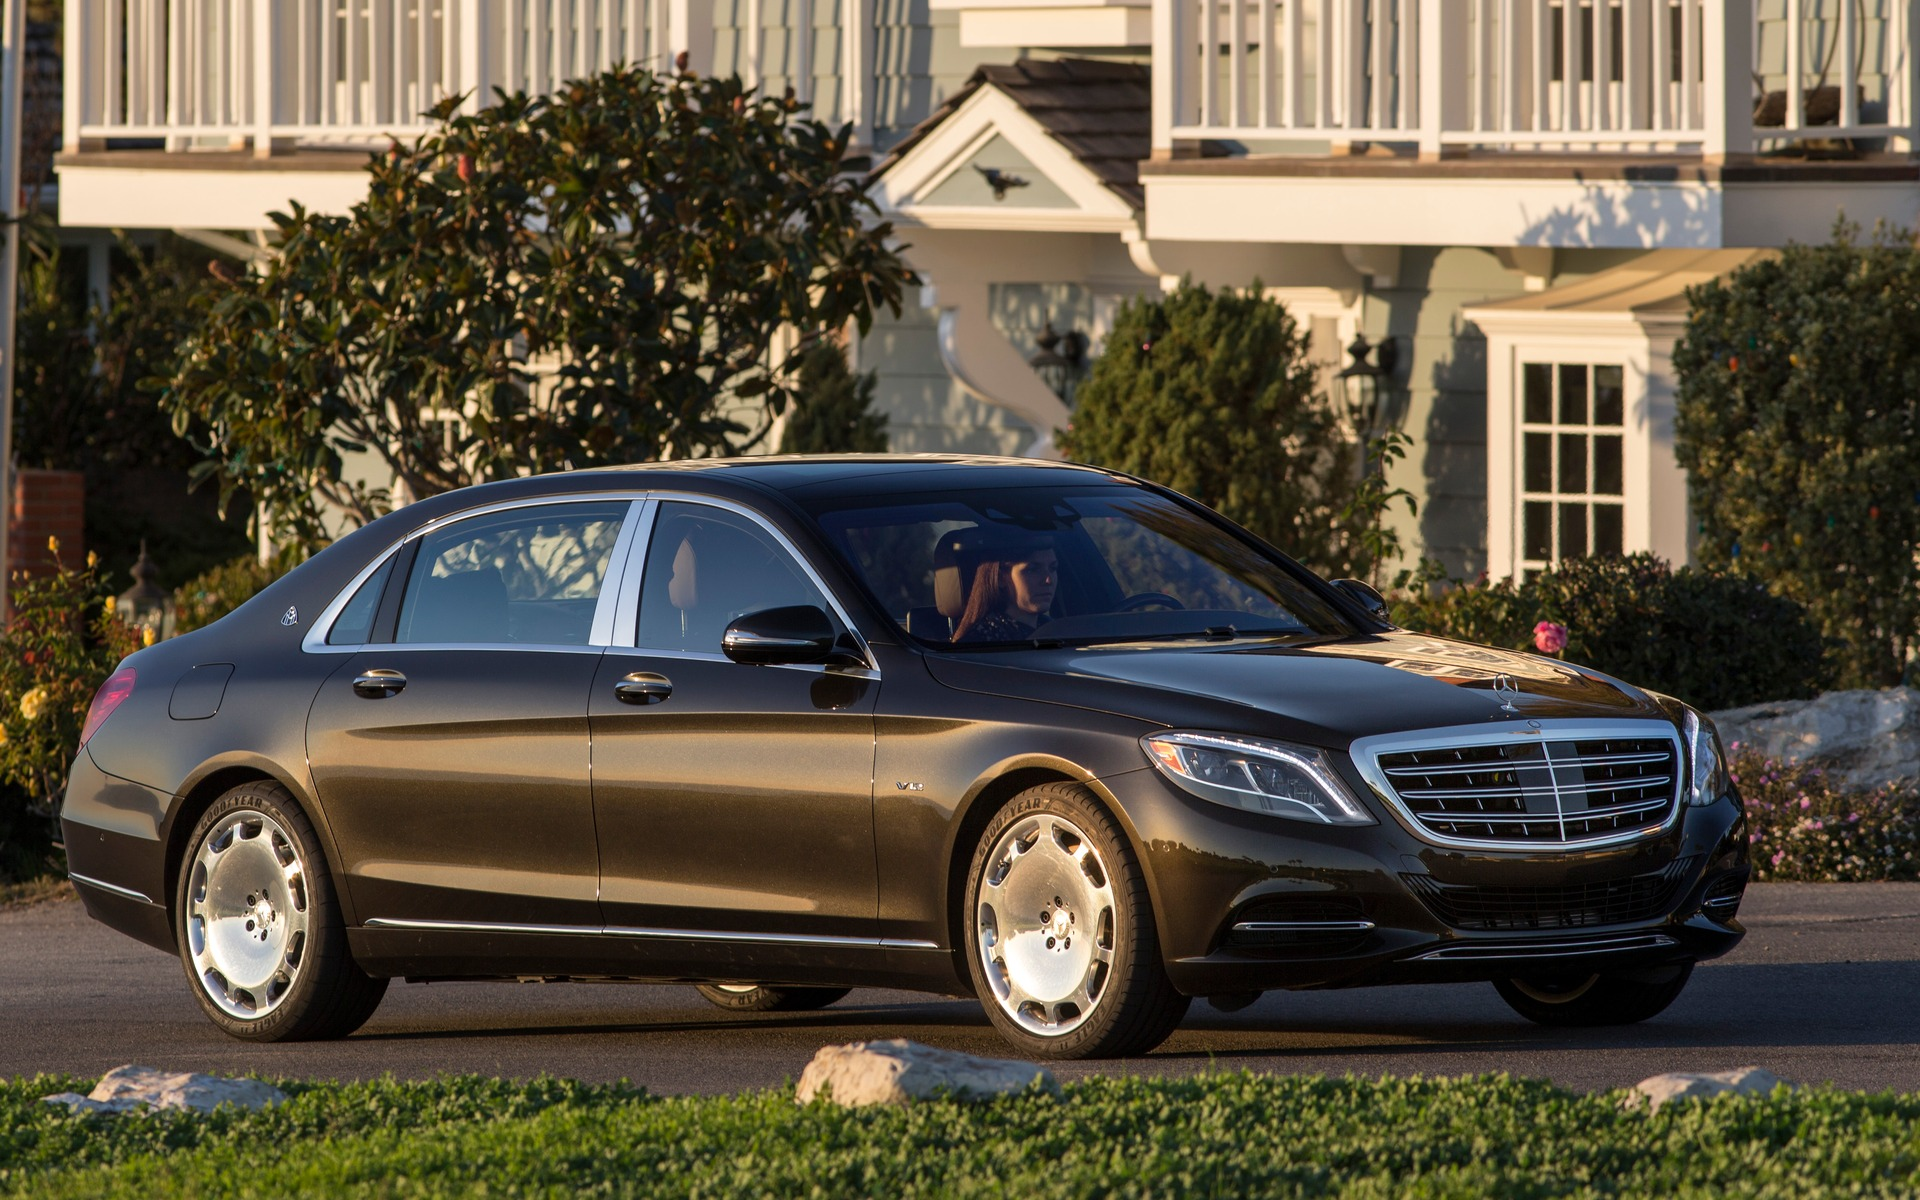 2016 mercedes benz maybach picture gallery photo 1 10 for Mercedes benz vehicle search